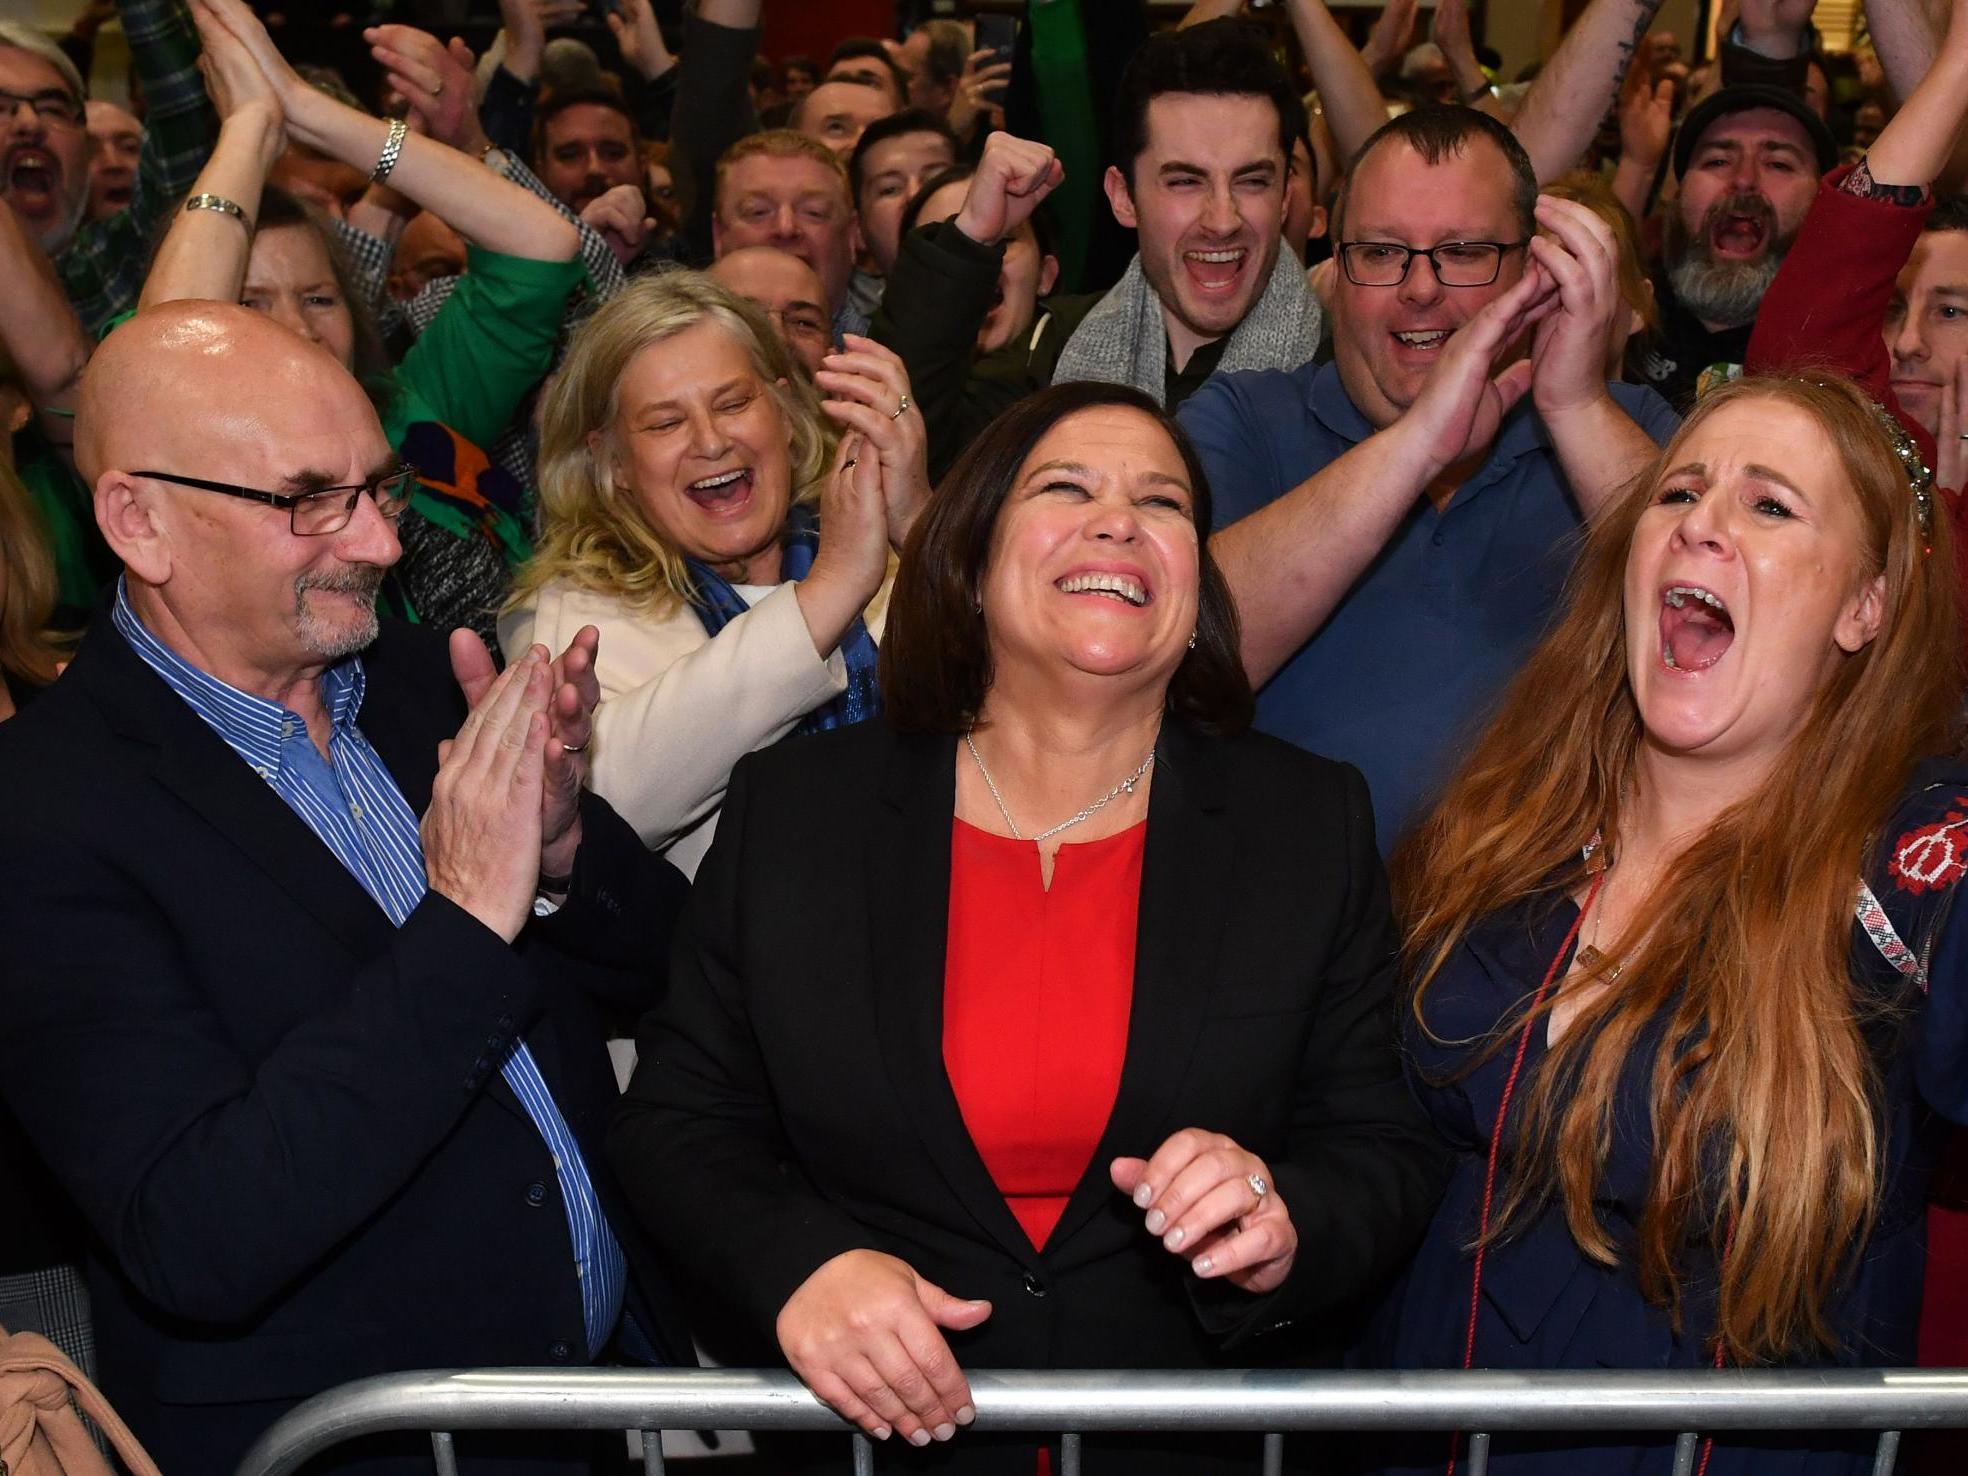 Opinion: Whatever your feelings about Sinn Féin, their influence should not be discounted